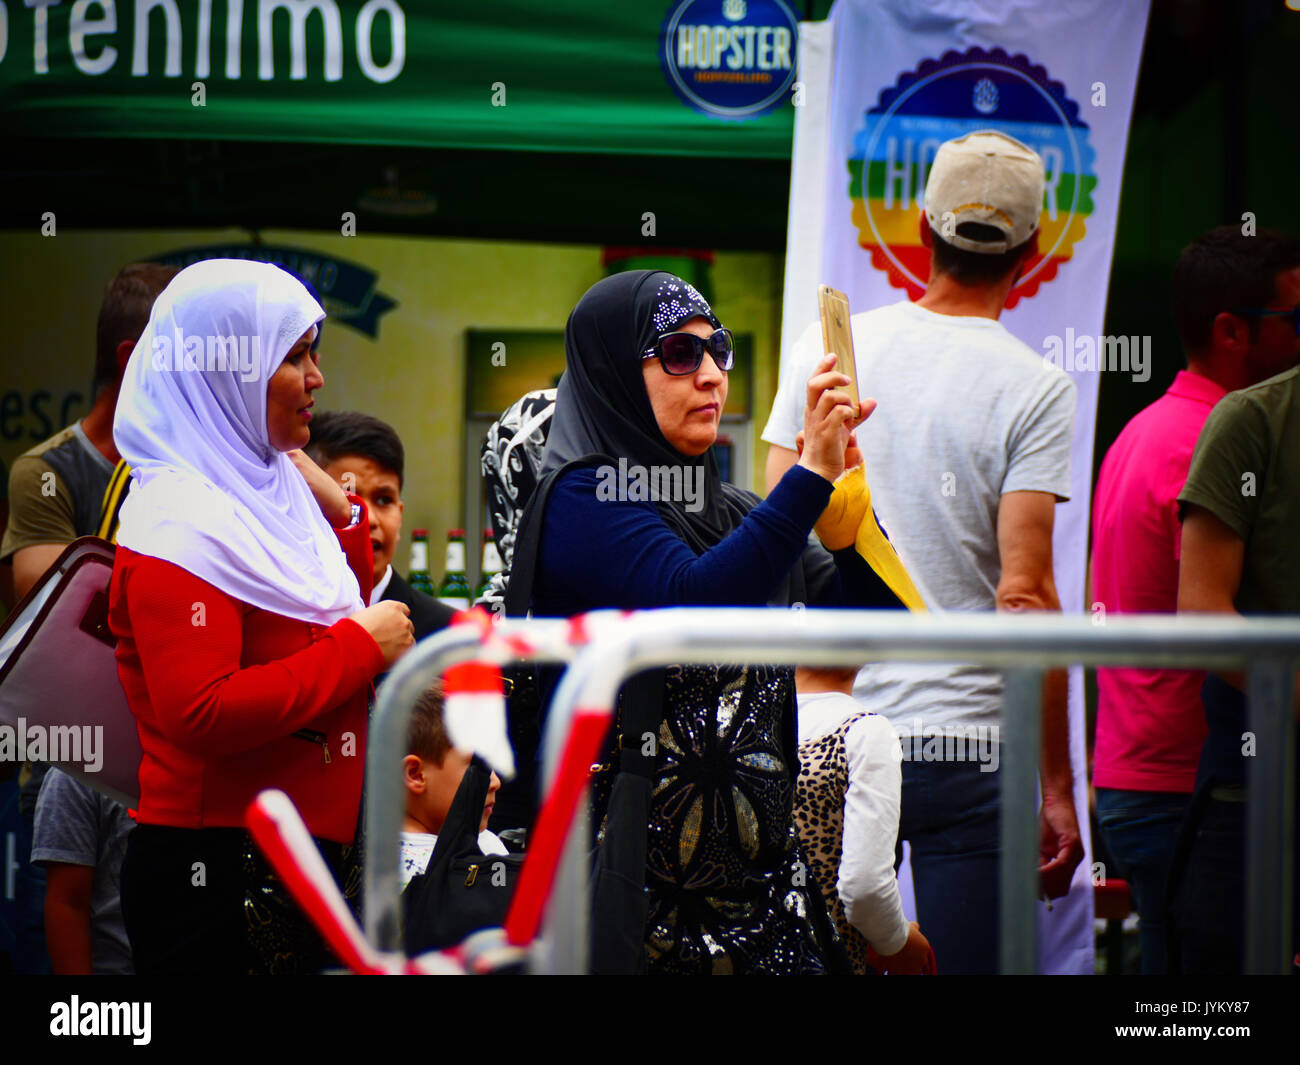 Muslim women photographing Germany German Munich CSD Christopher's Street Day Marriage for All party concert celebration - Stock Image